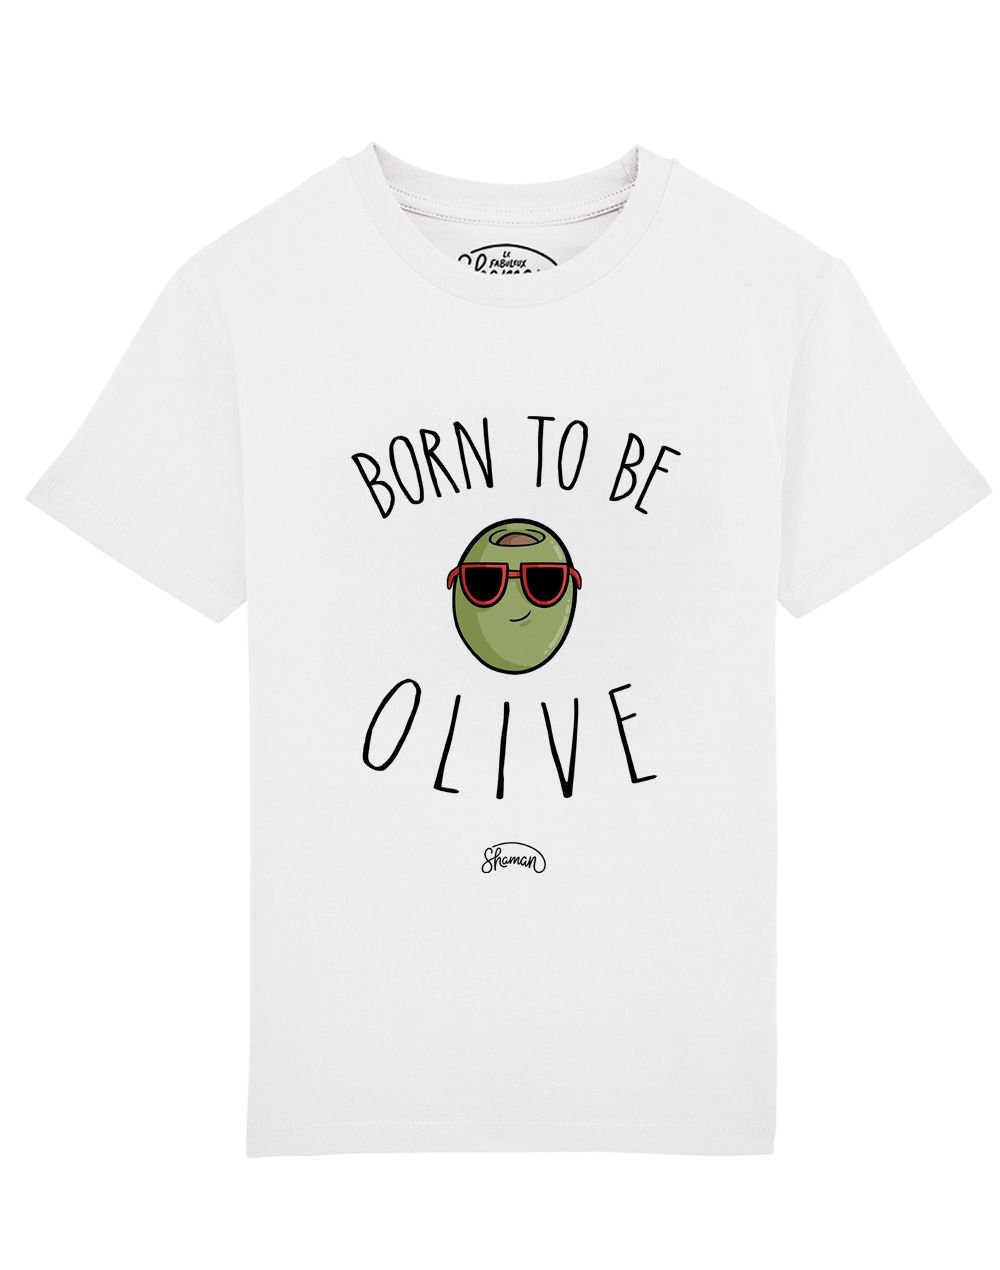 Tee shirt Born to be olive